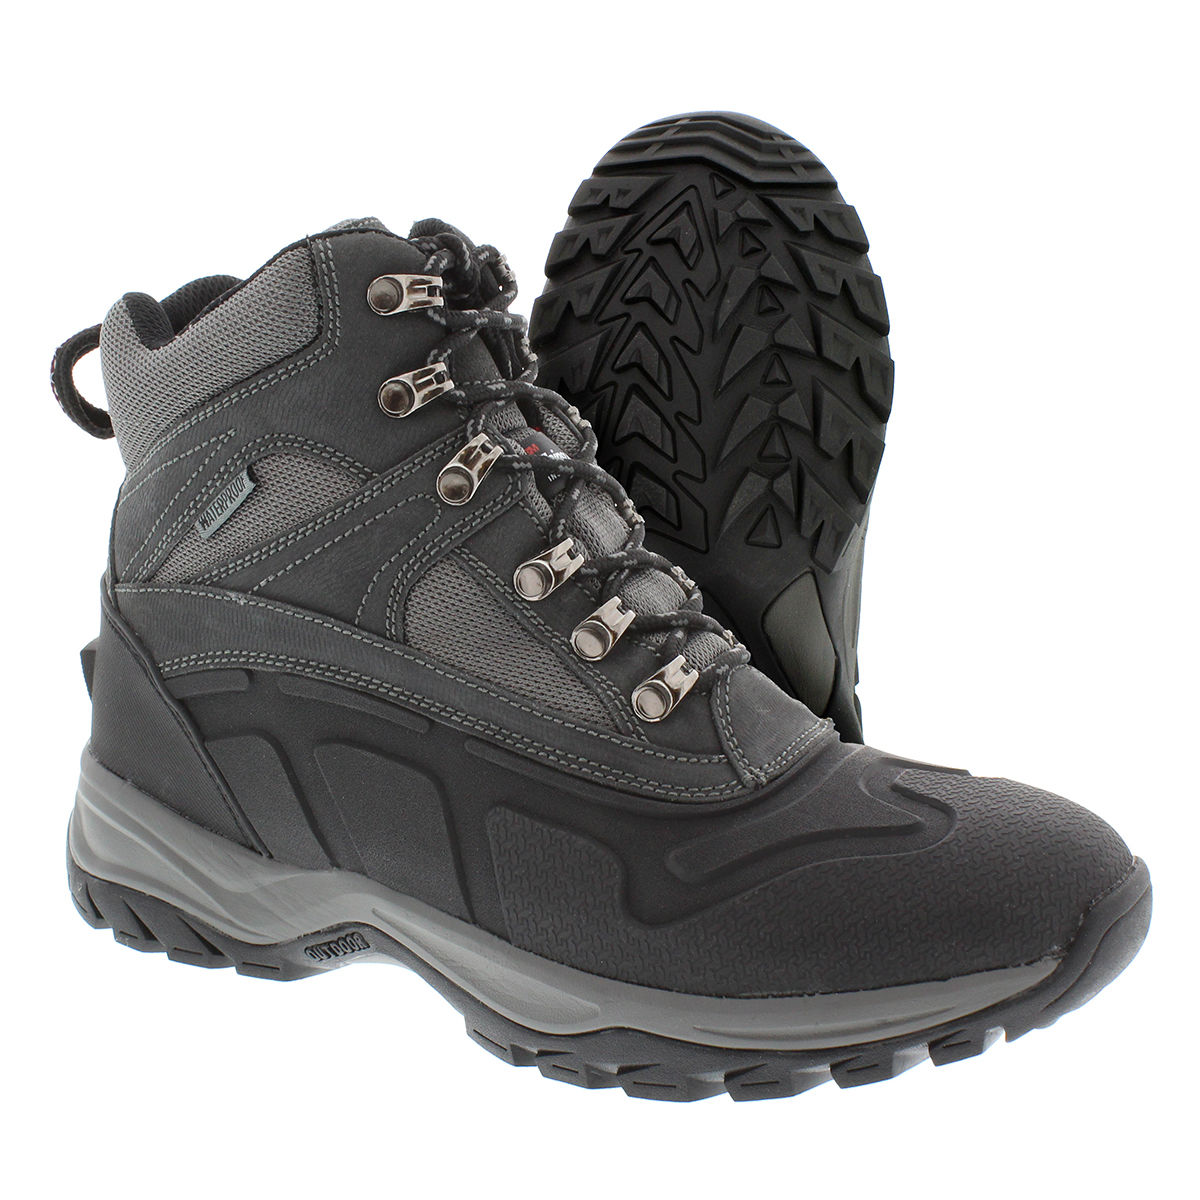 Itasca Mens Snow Shredder Boot